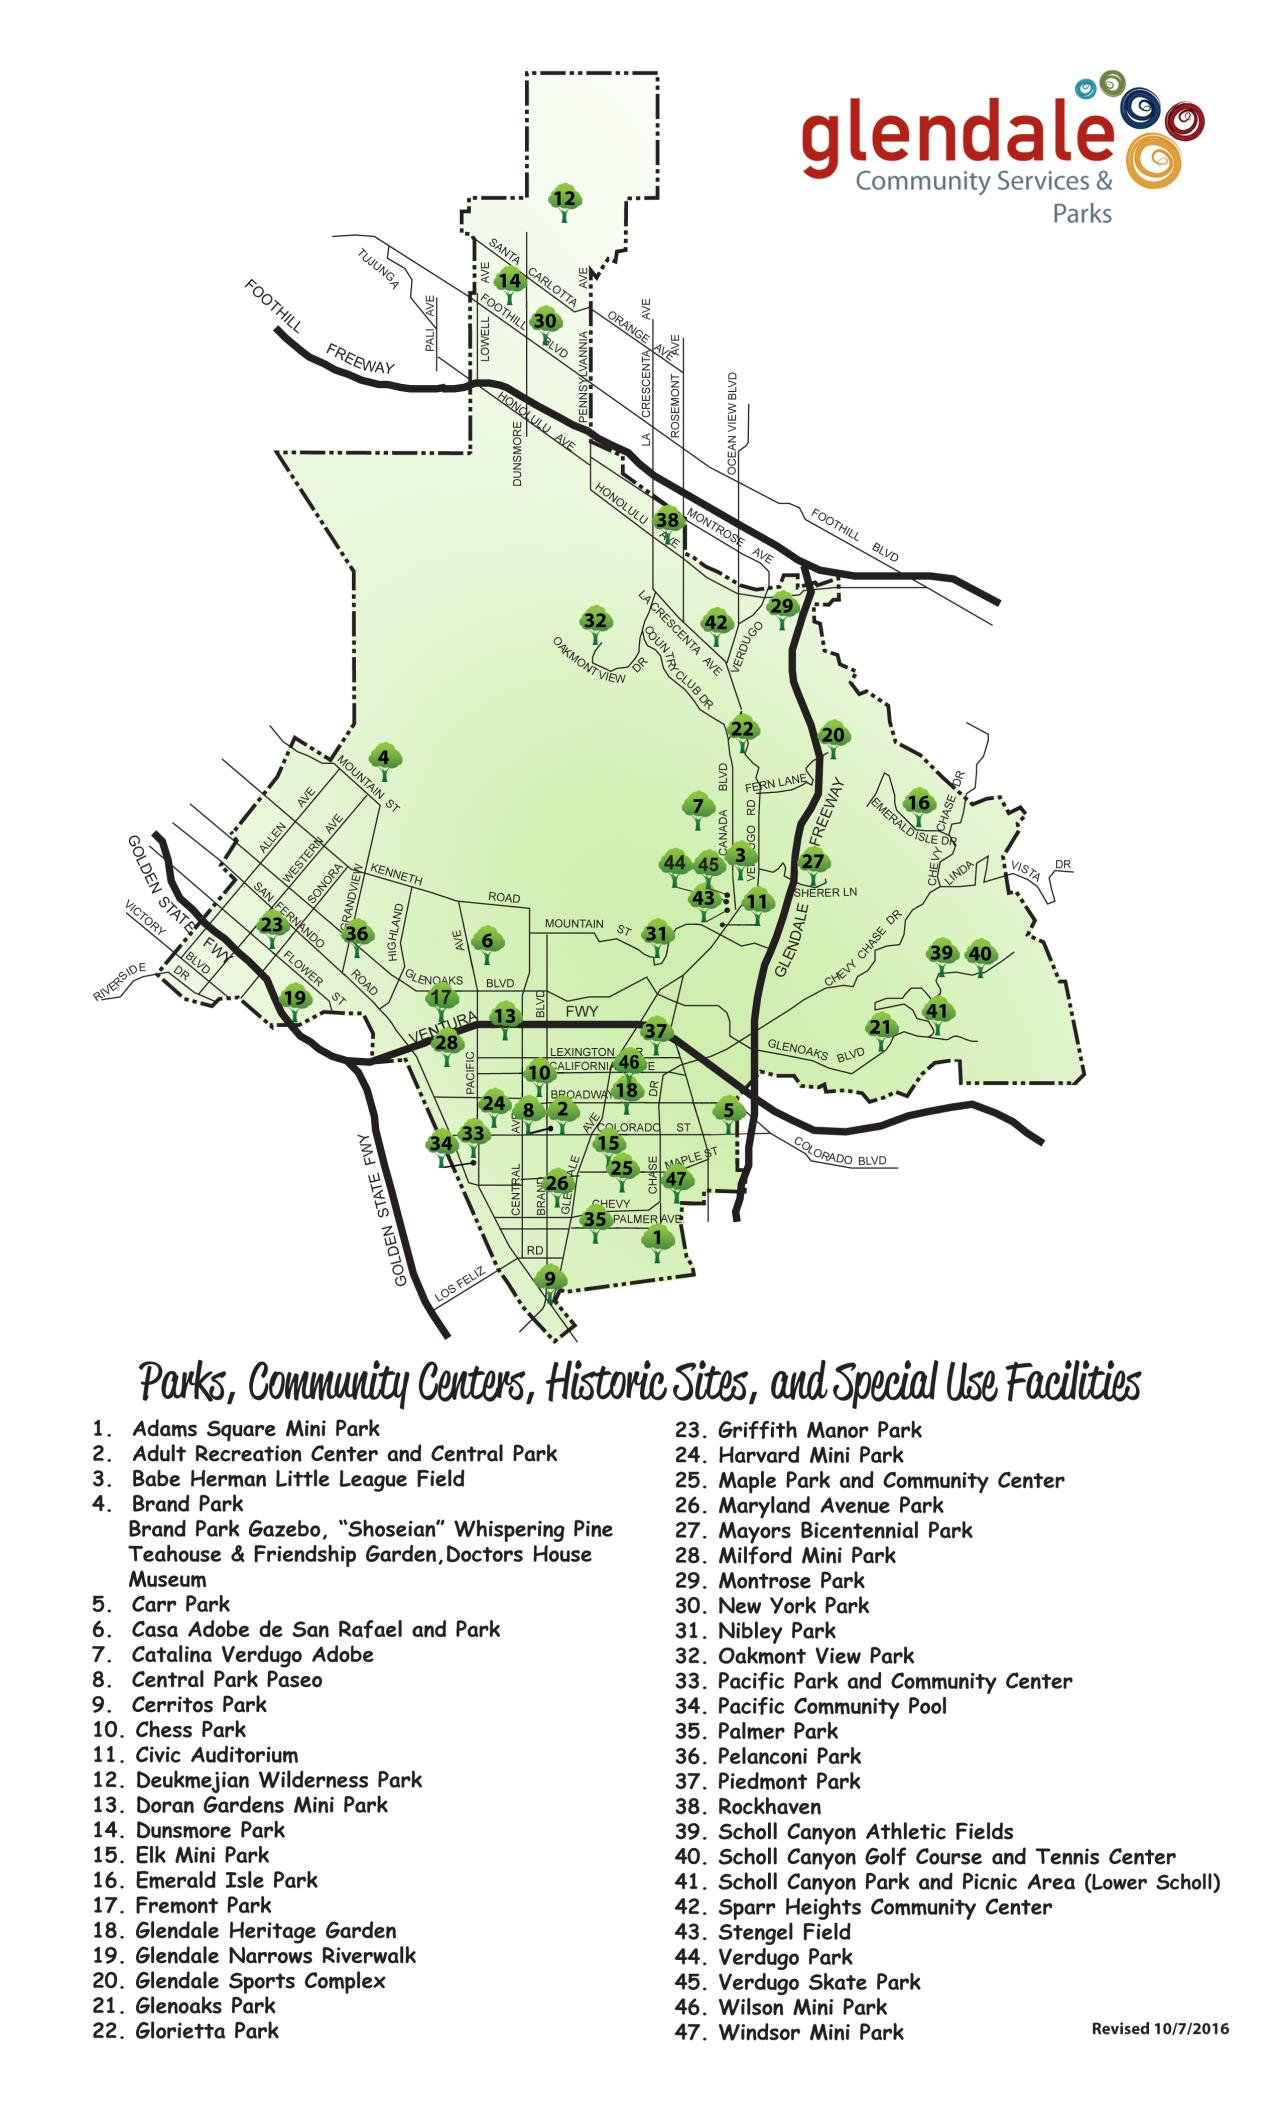 Map of Glendale Parks